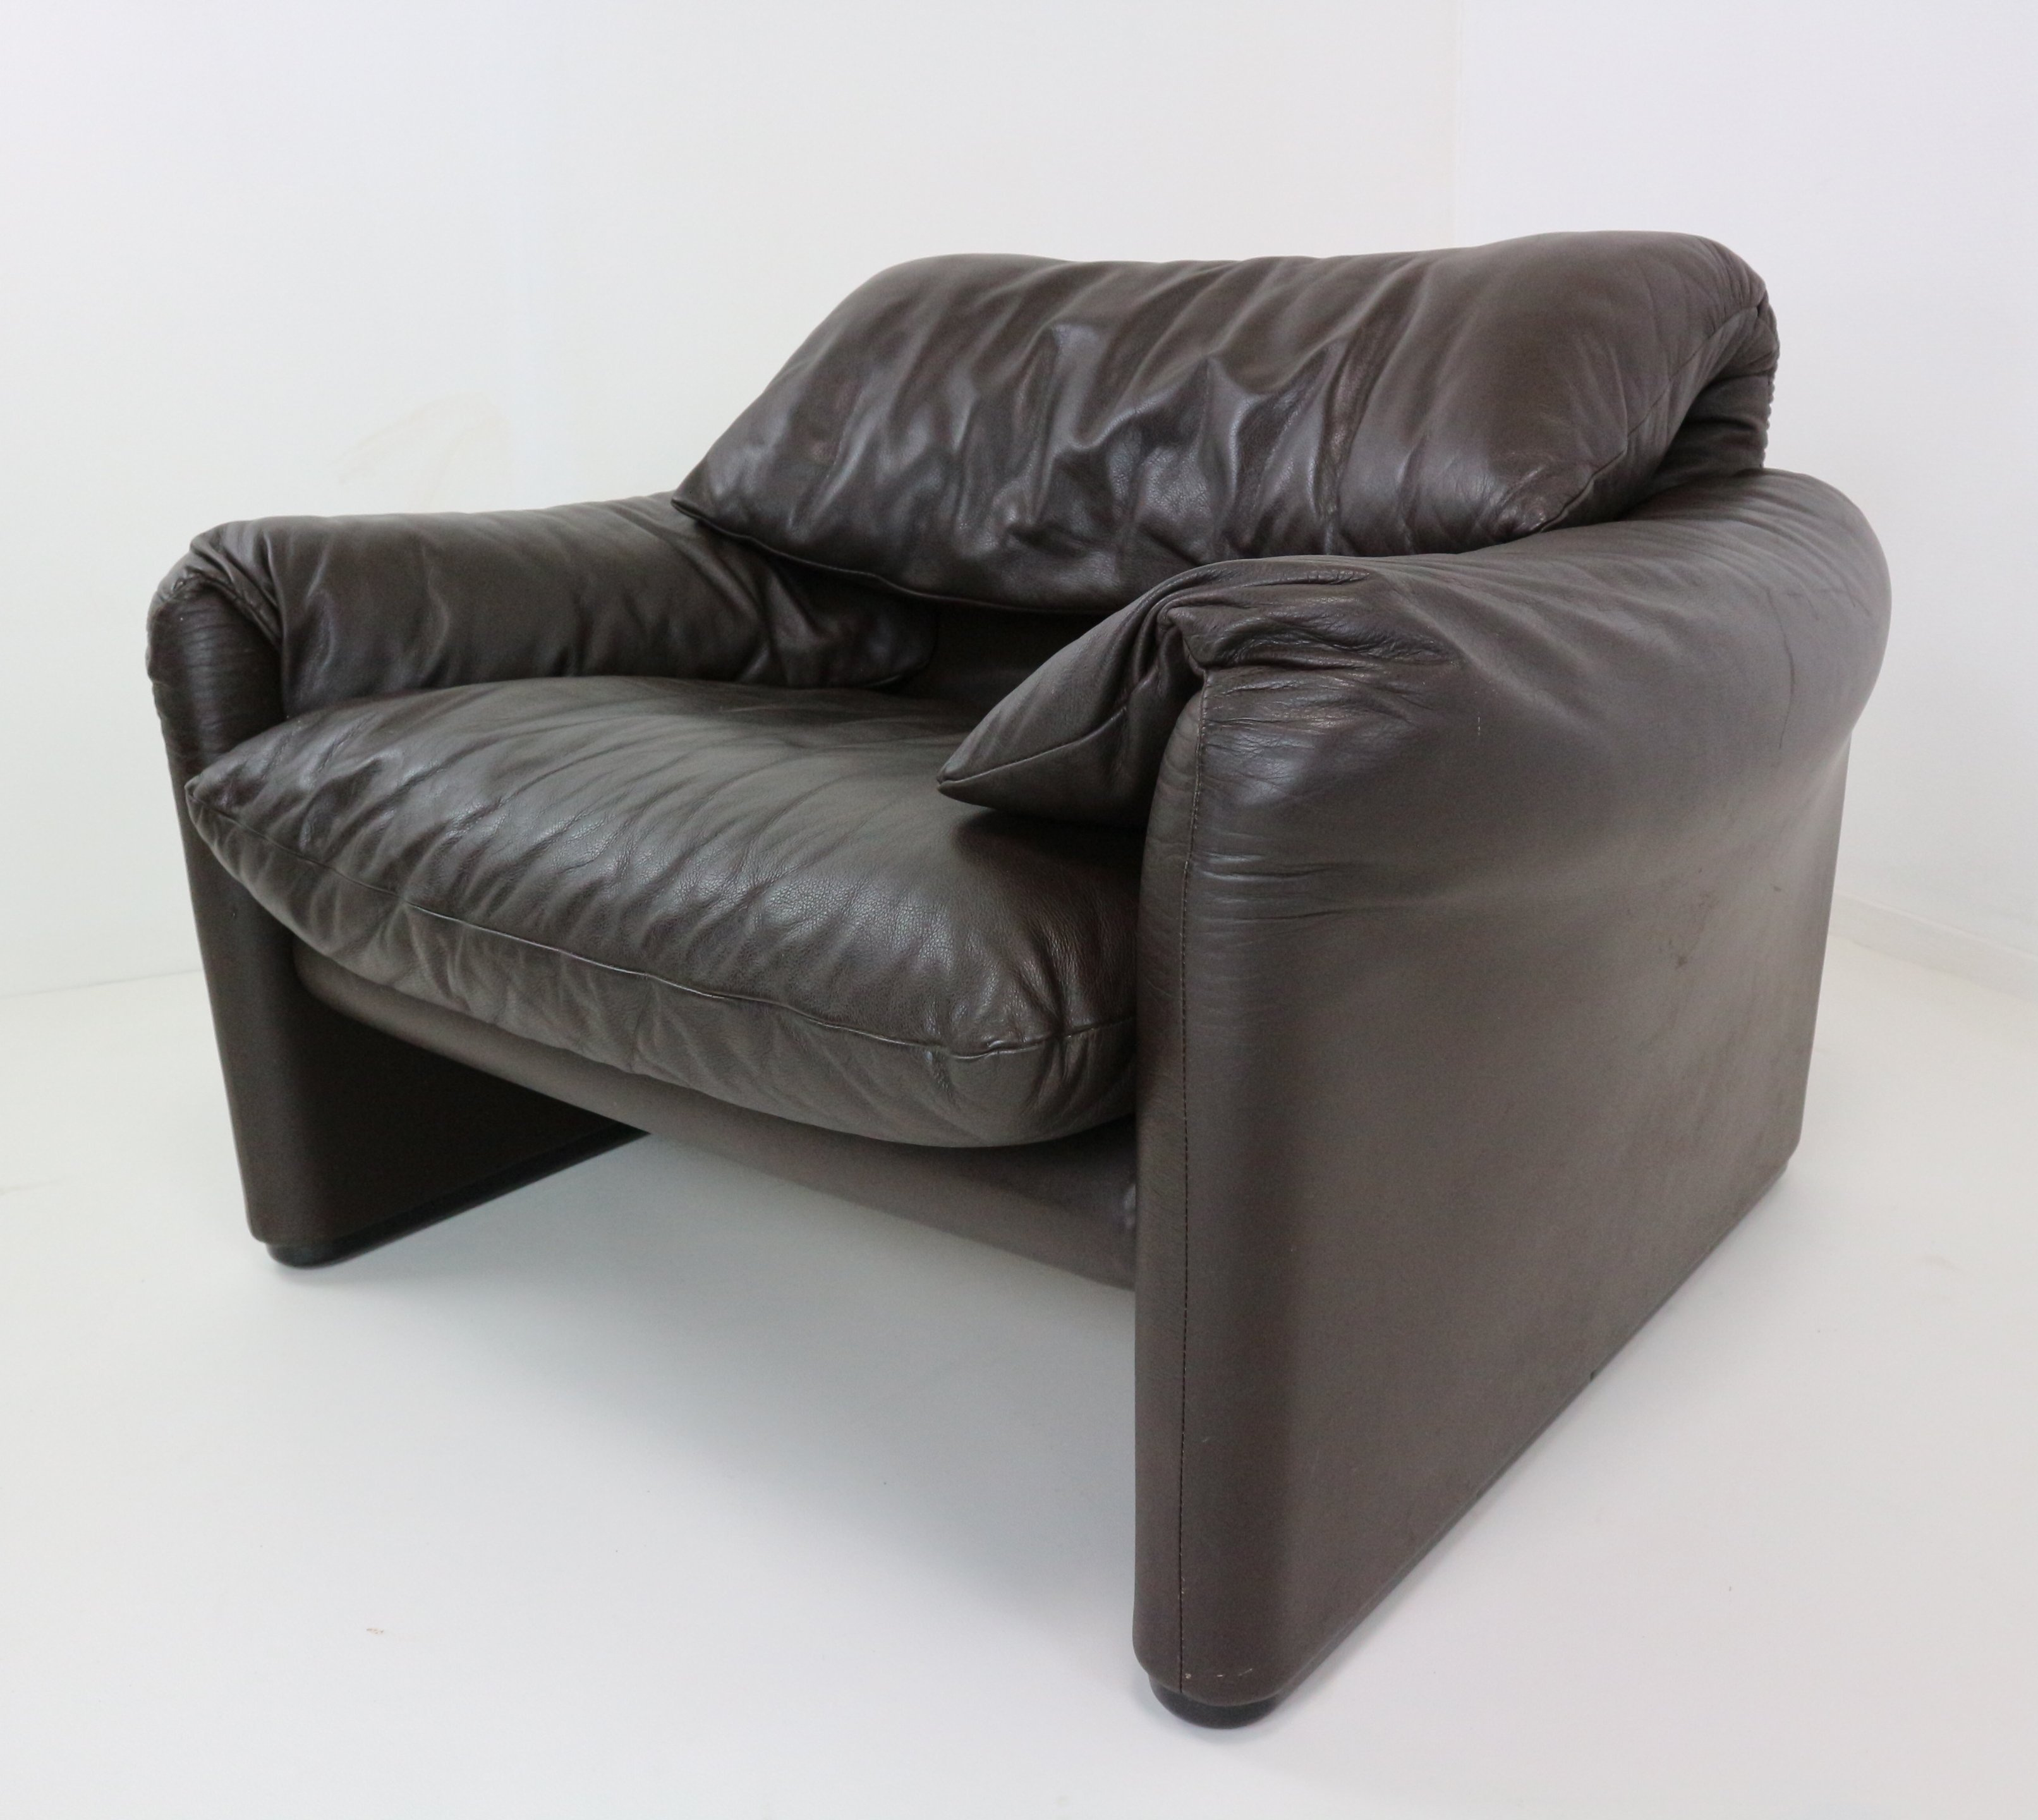 black chair lounge ashblack rocking karola gallery ikea wooden leather